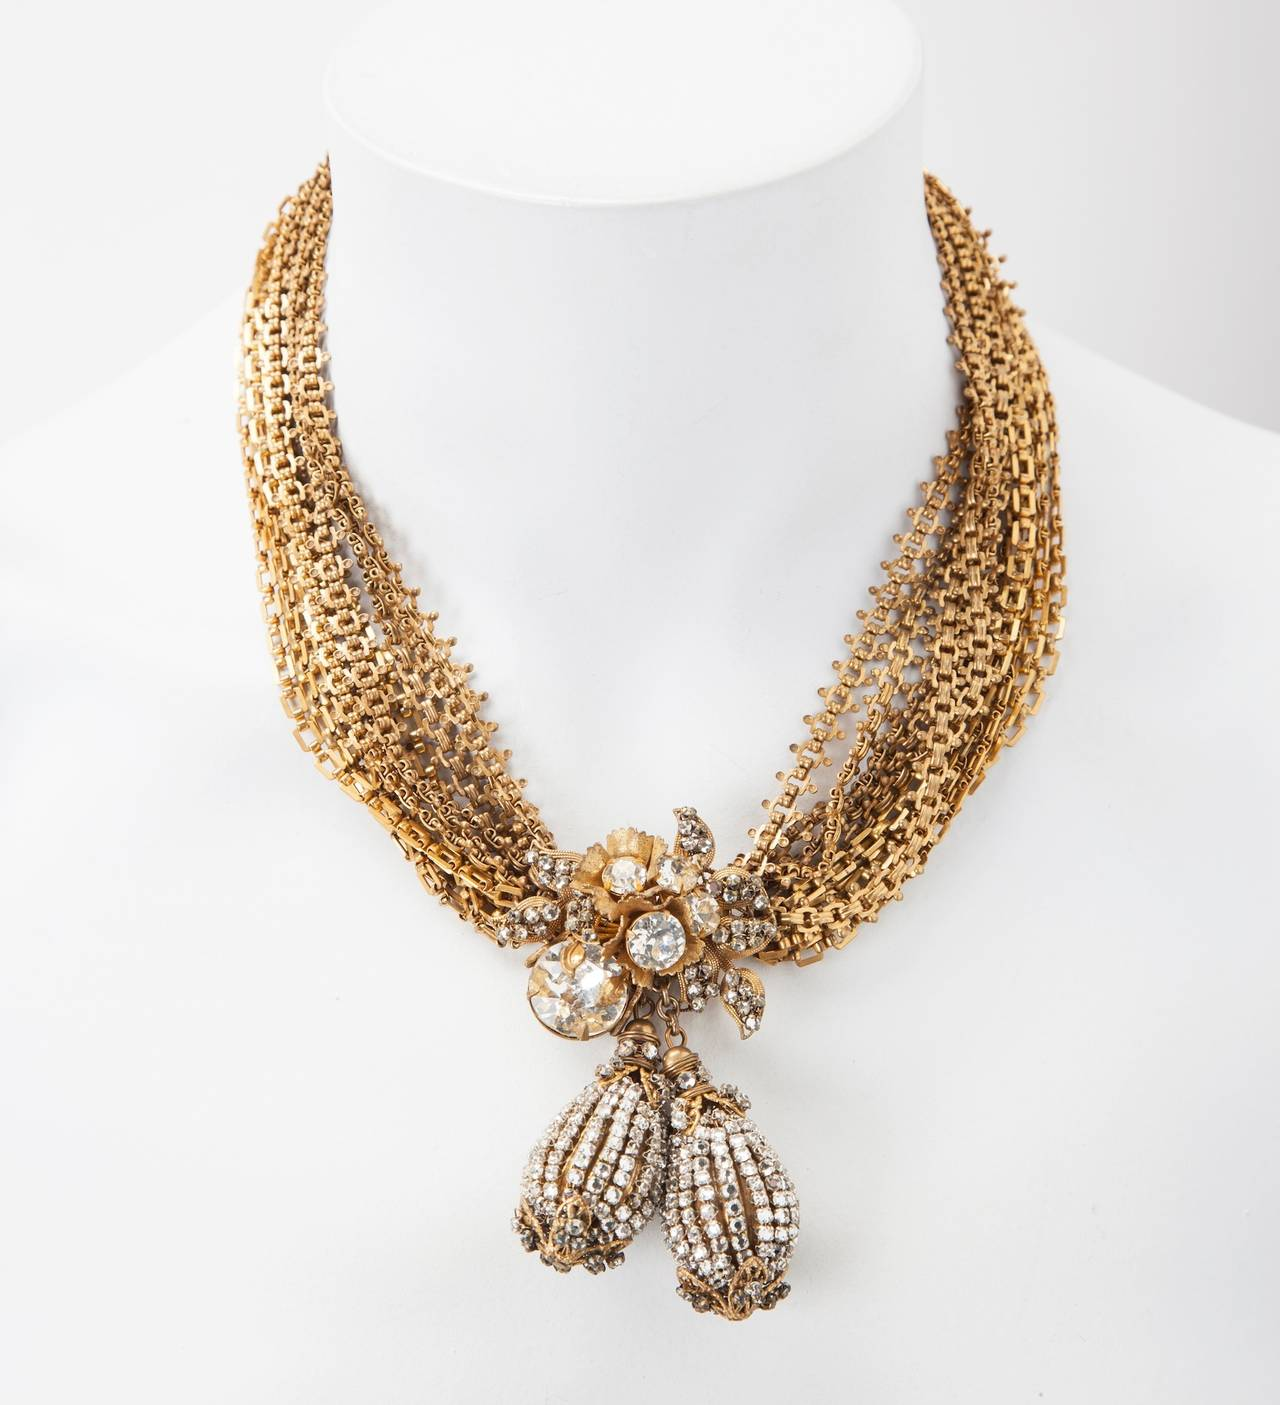 Miriam Haskell's elaborate signature Russian gilt multi chain necklace with intricate crystal pave work mounted on gilt filigrees. Focal pendant with double pear shaped pendant drops of hand sewn minute crystal rose montes falling from a floriform